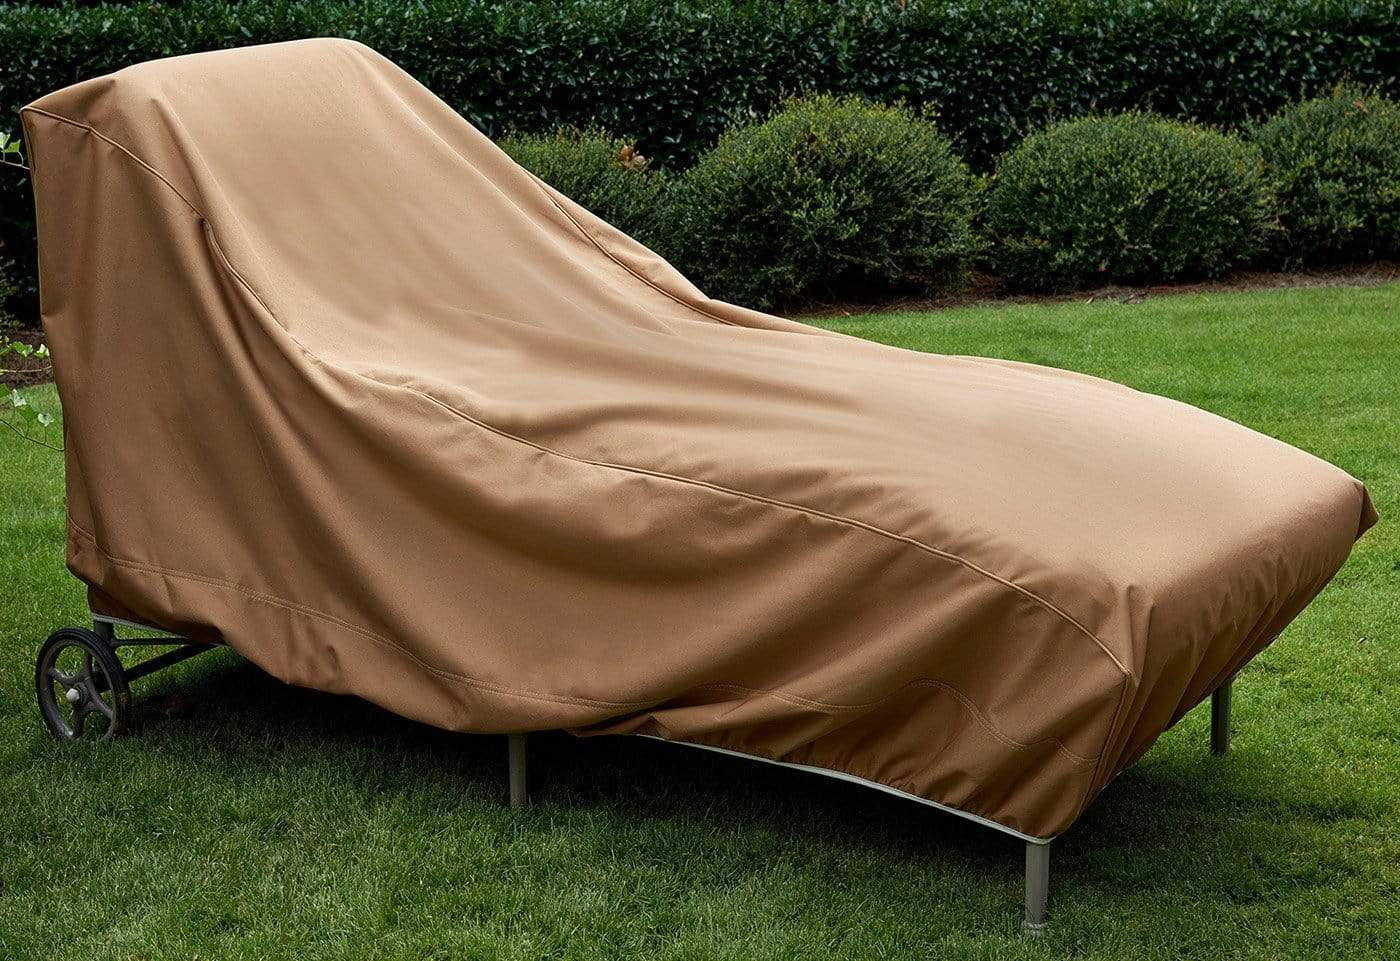 Patio Armor Chaise Lounge Outdoor Furniture Cover - Brown